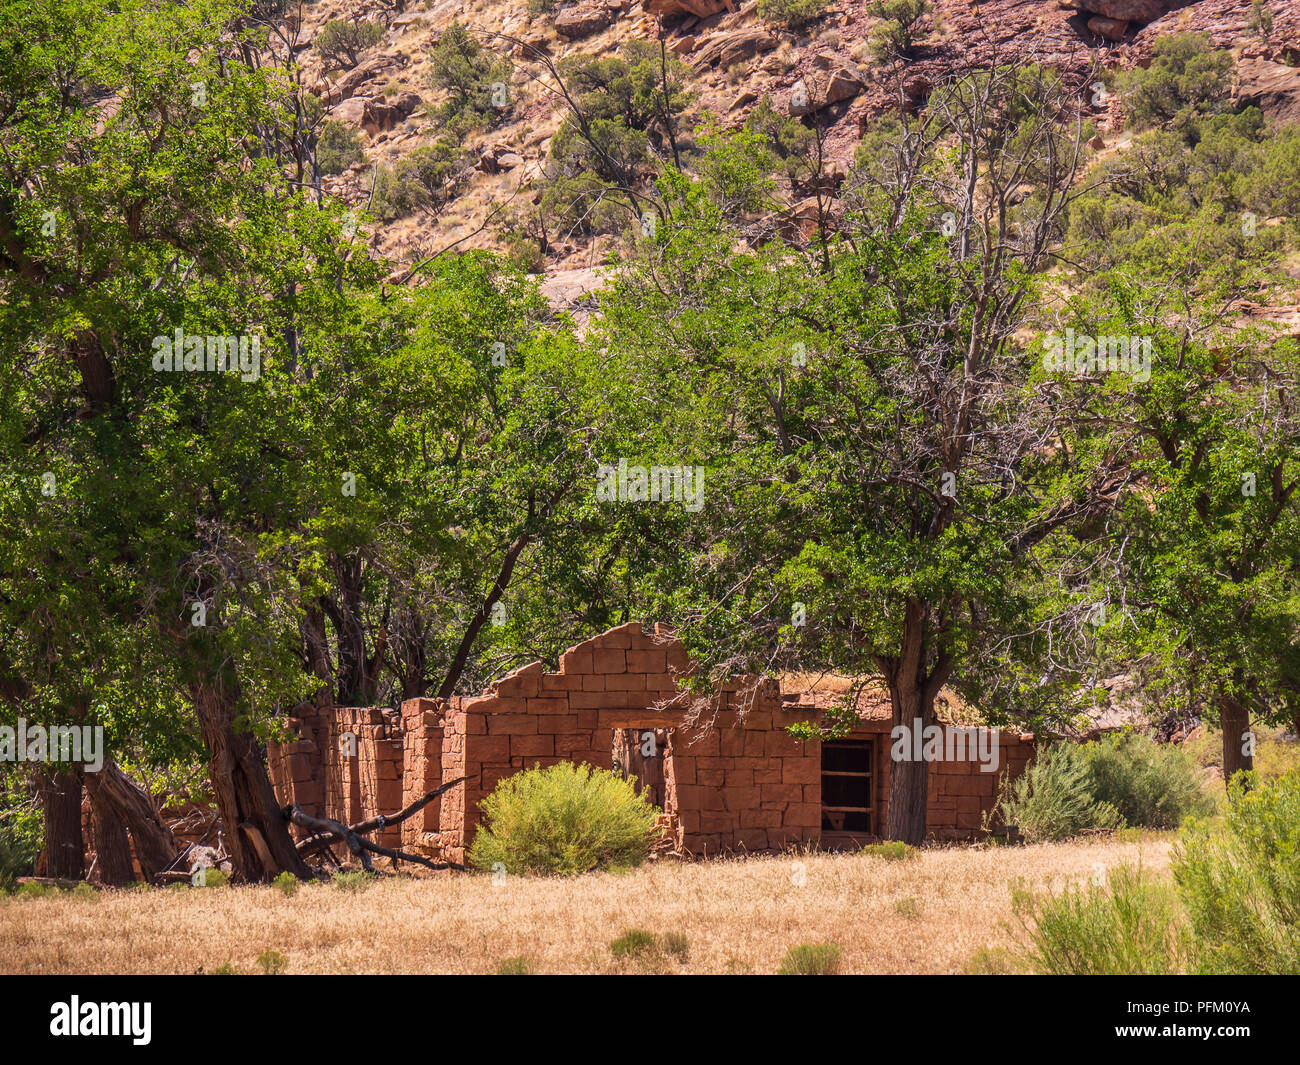 Rock Creek Ranch, Desolation Canyon north of Green River, Utah. - Stock Image